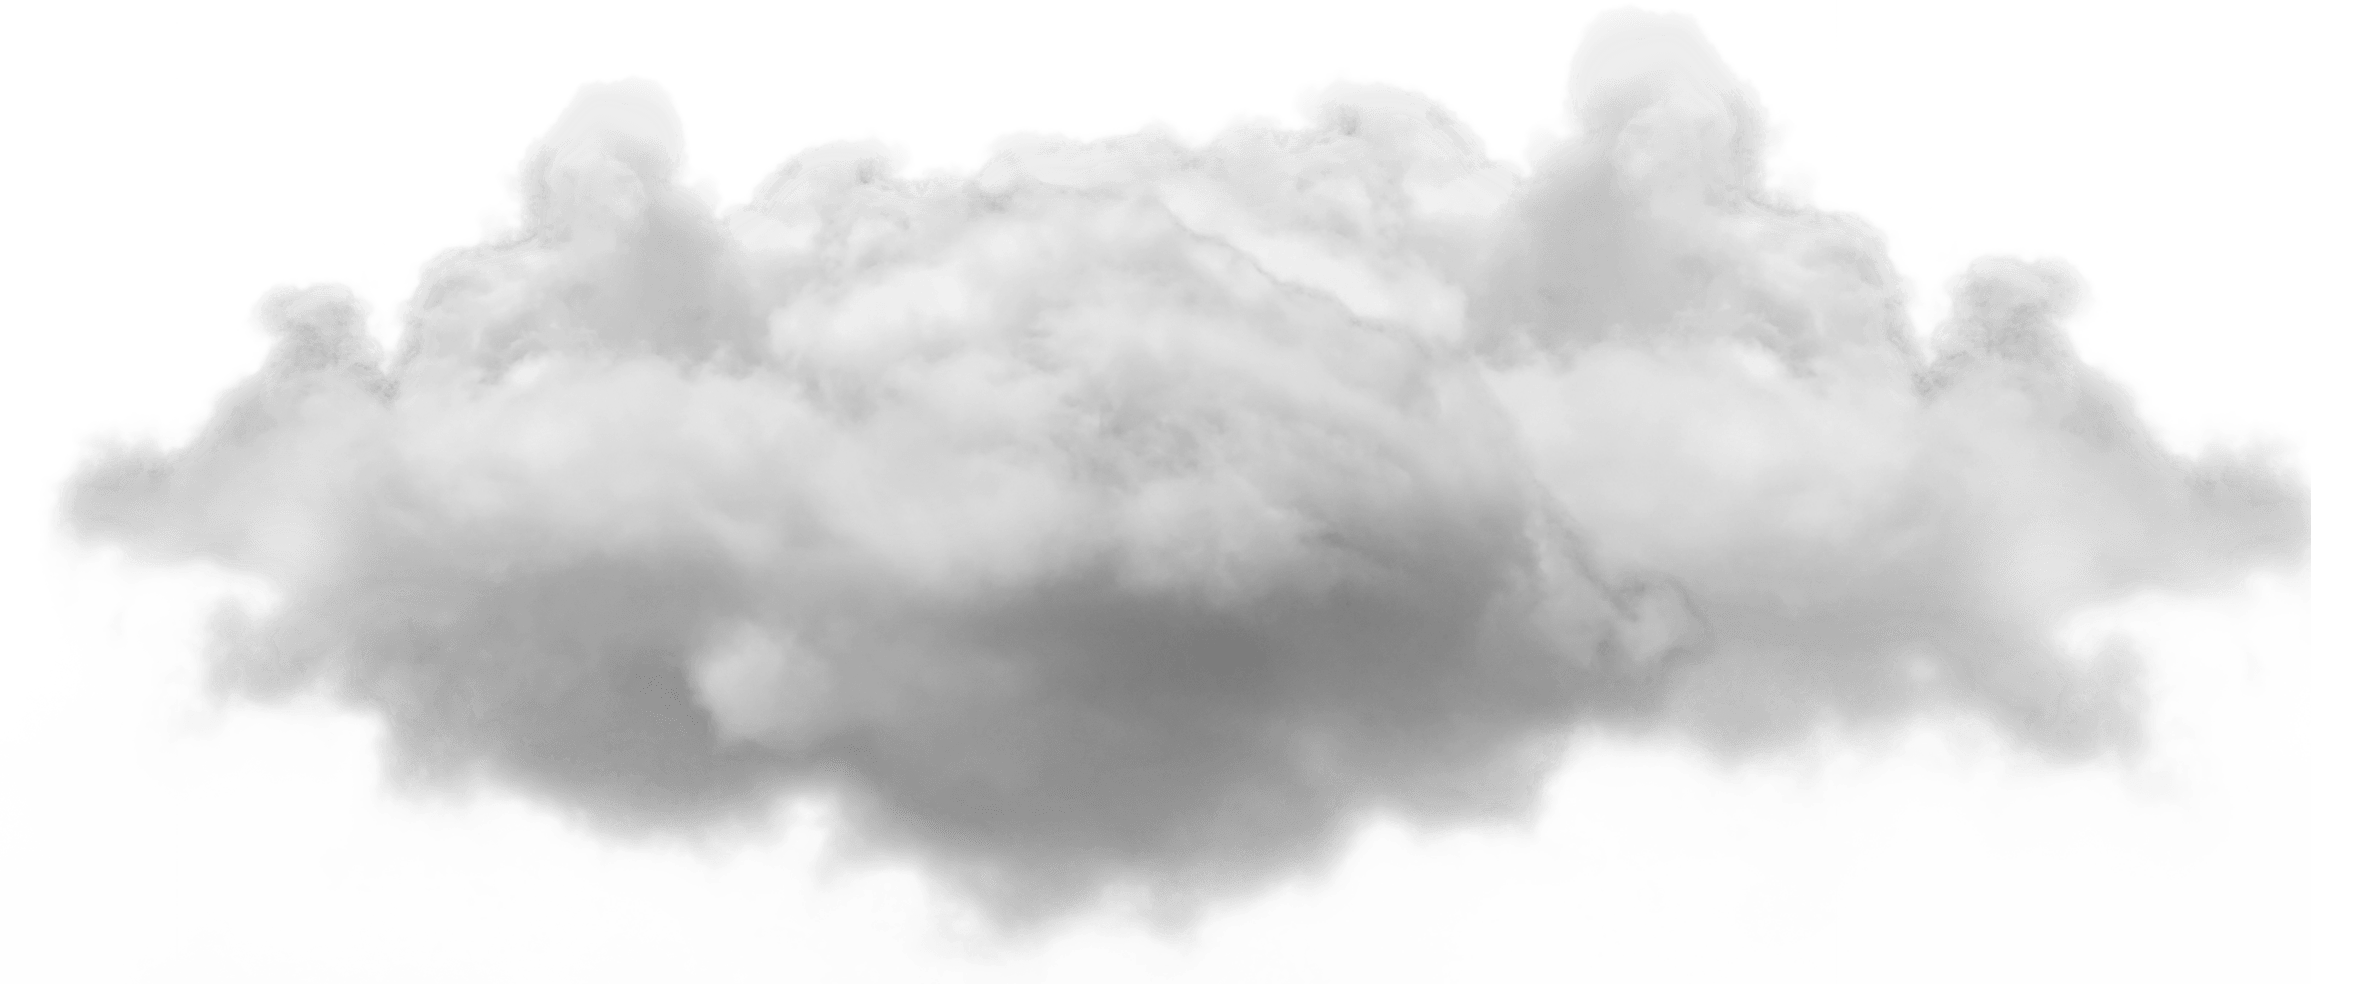 Small single cloud image. Clouds png transparent picture